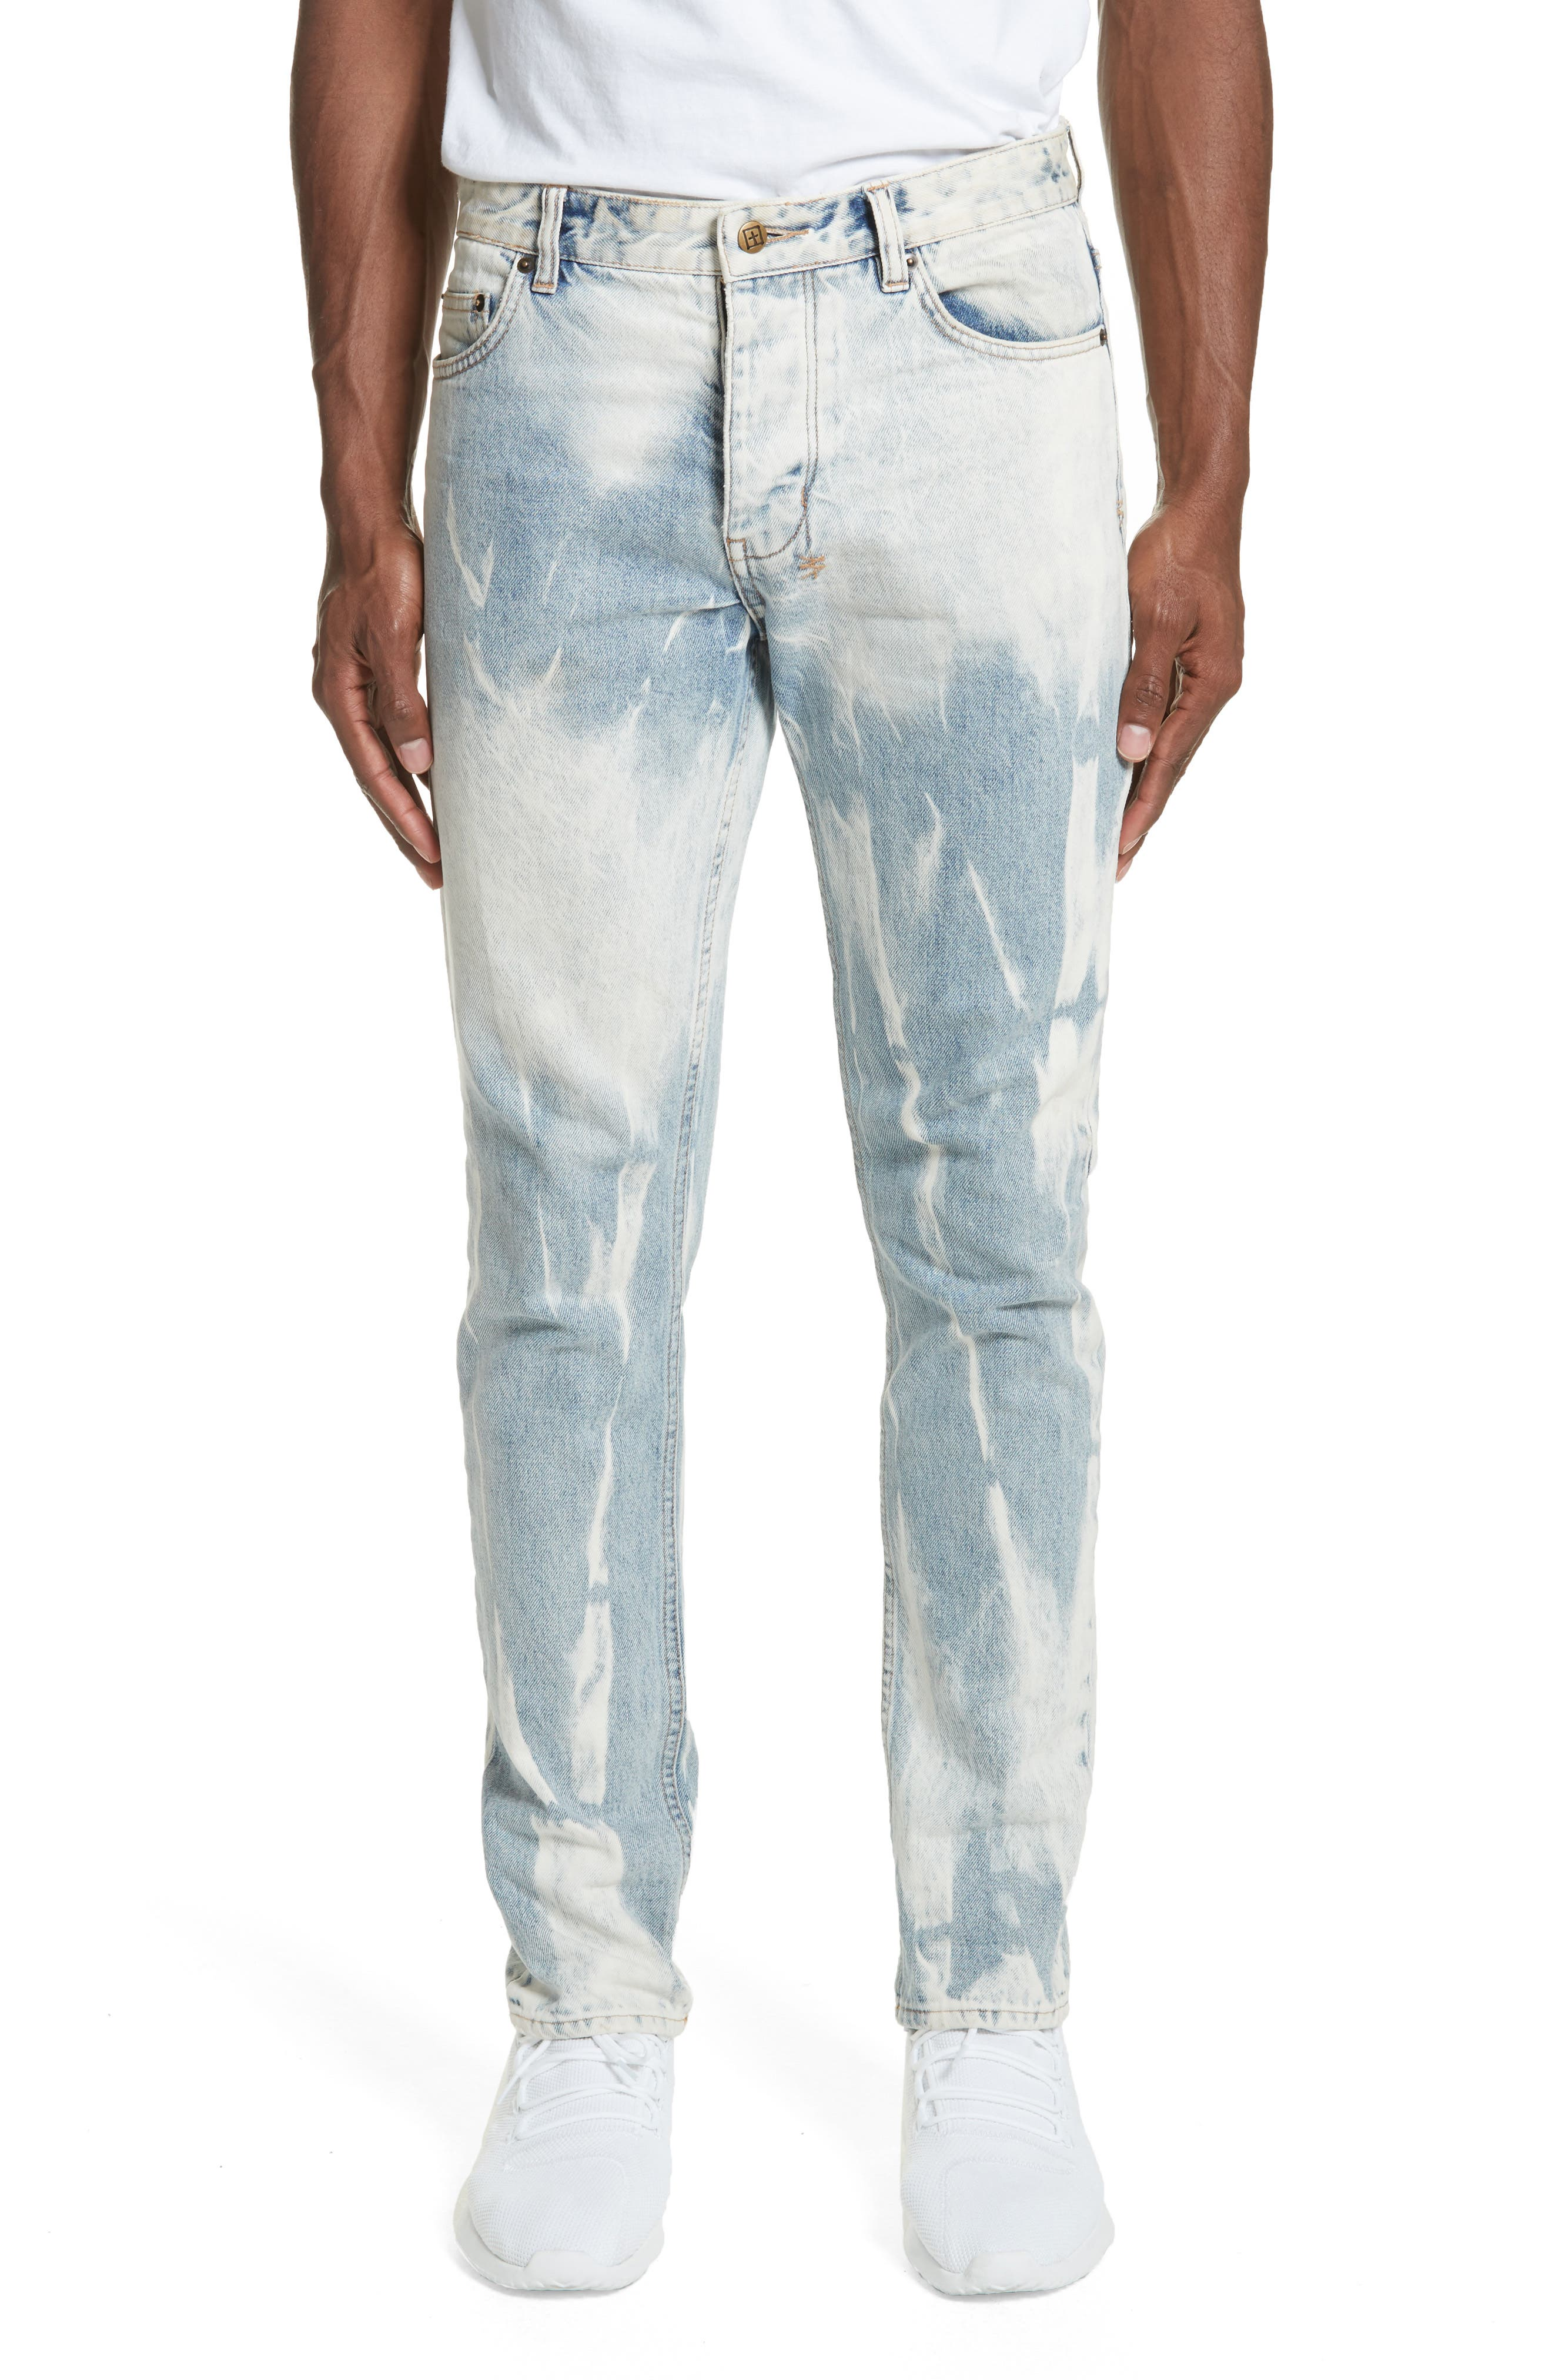 Chitch Mile Skinny Jeans,                             Main thumbnail 1, color,                             460